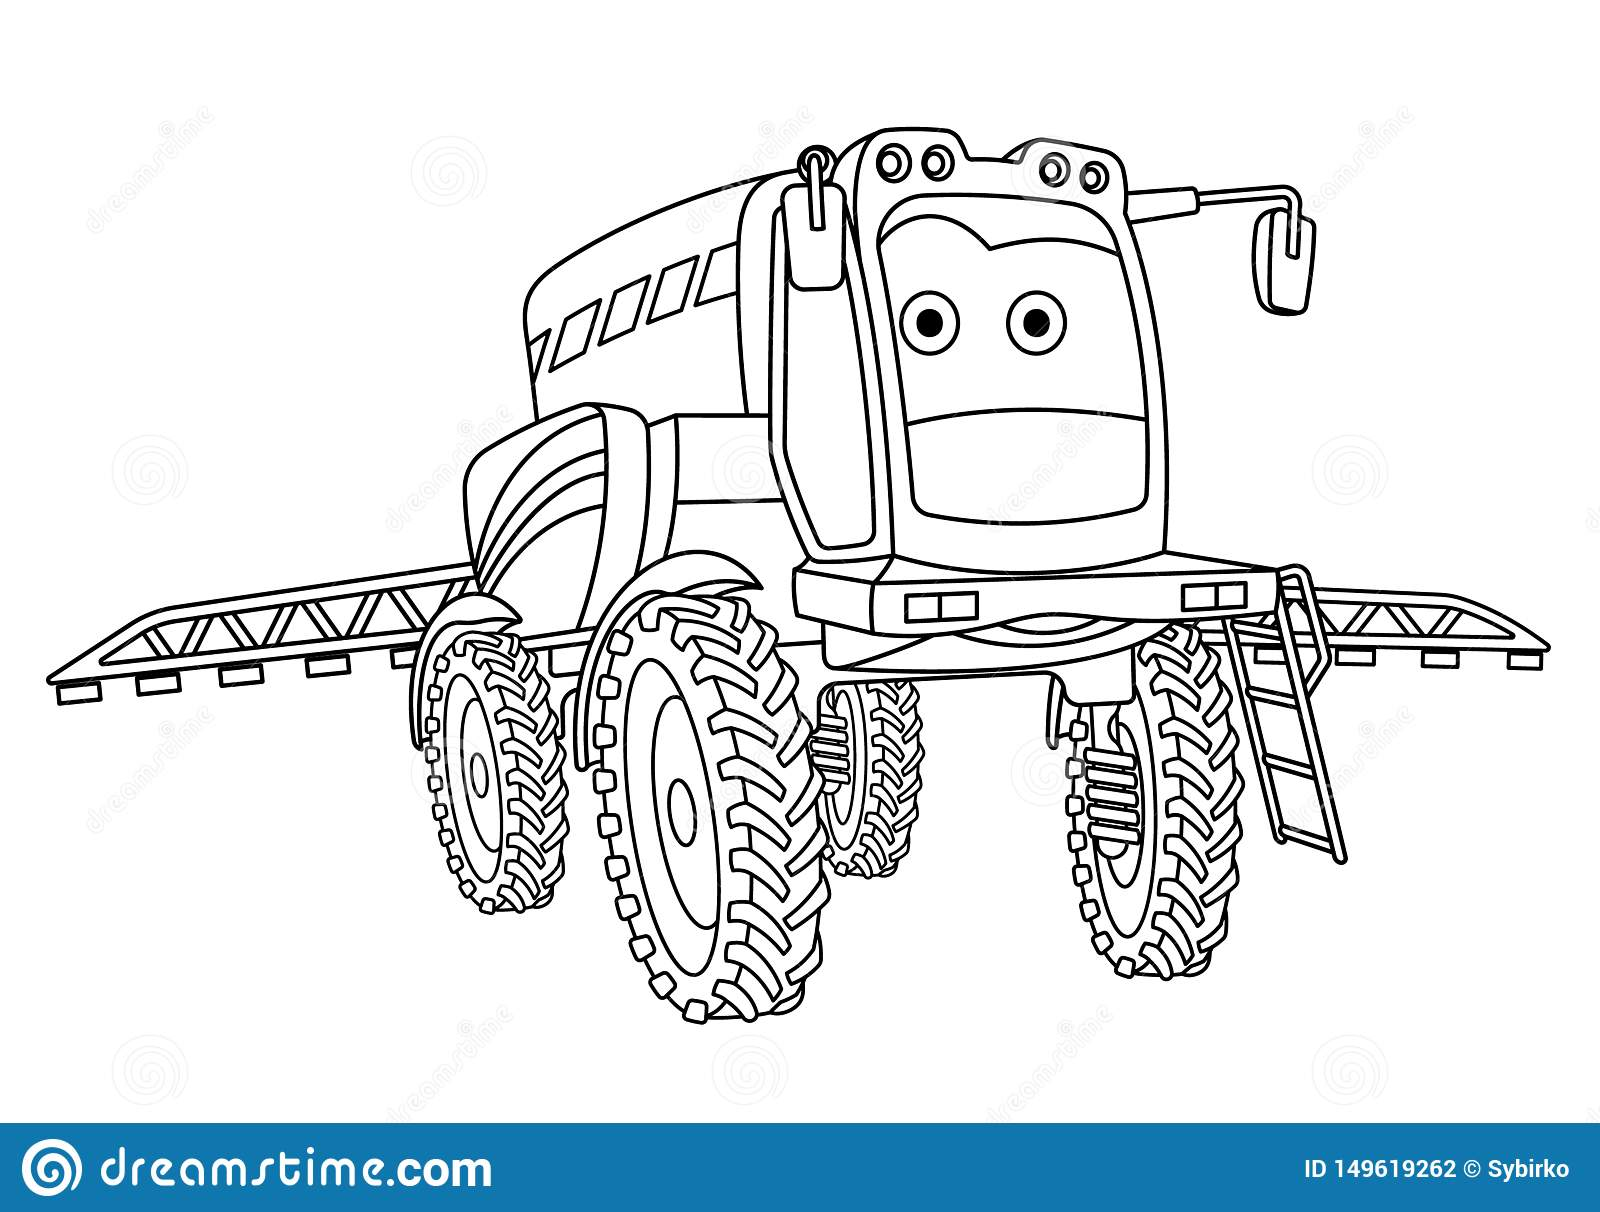 Snow Plow Coloring Pages Picture to Pin on Pinterest PinsDaddy ... | 1212x1600